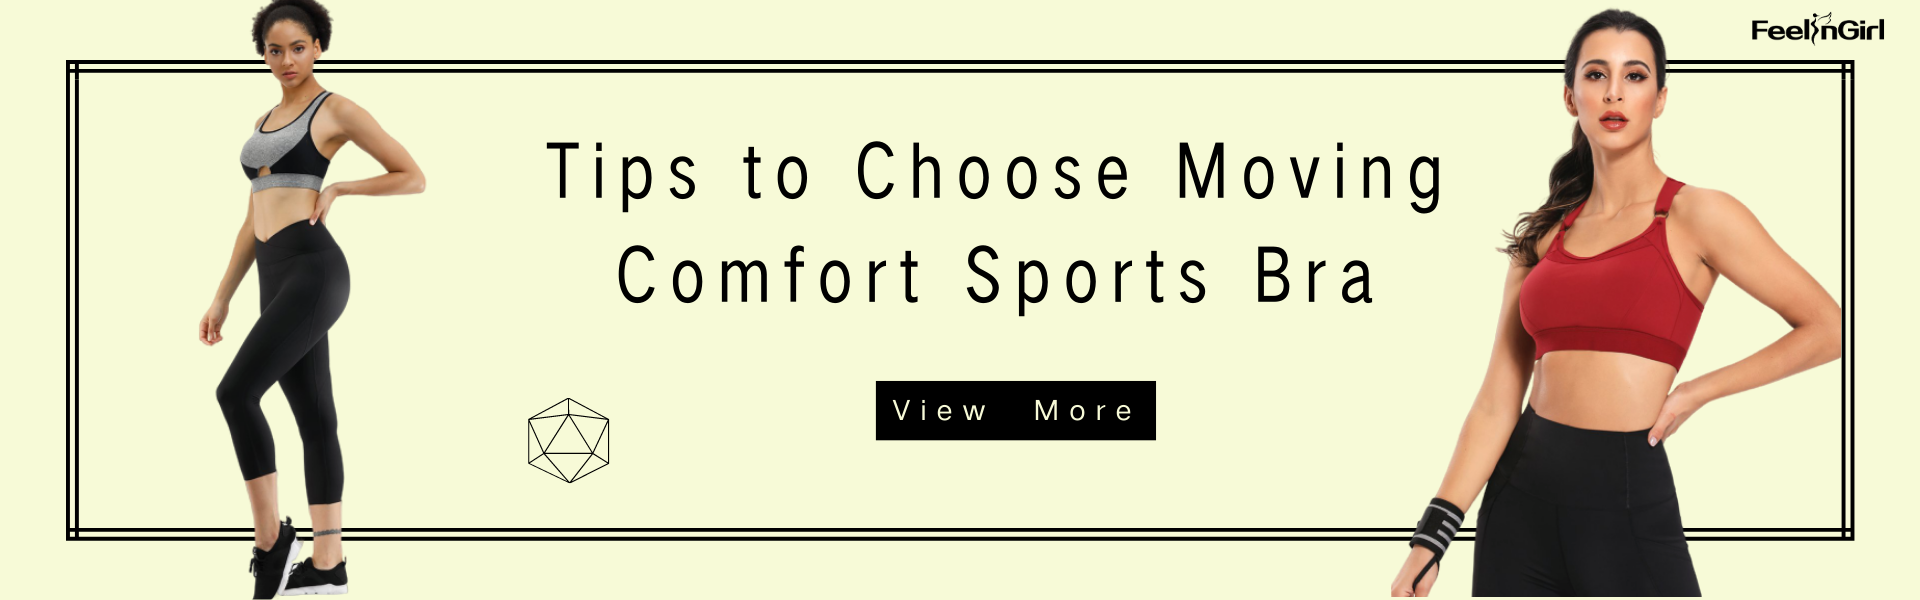 Tips to Choose Moving Comfort Sports Bra